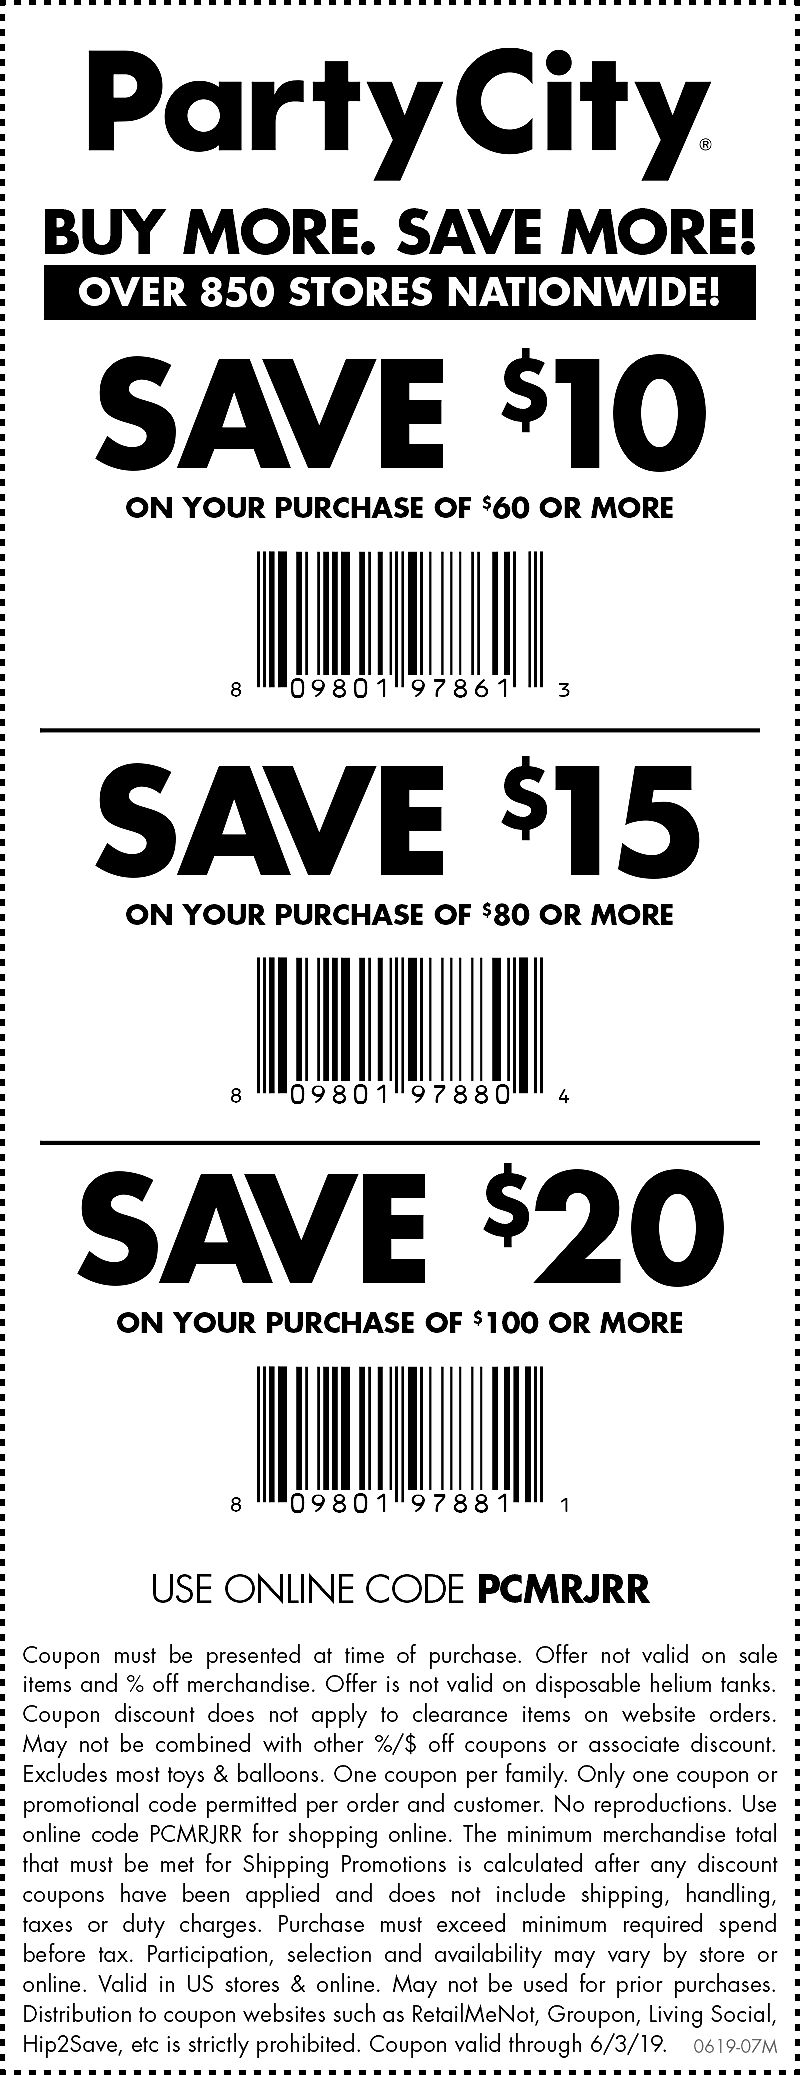 Party City Coupon August 2019 $10 off $60 & more today at Party City, or online via promo code PCMRJRR